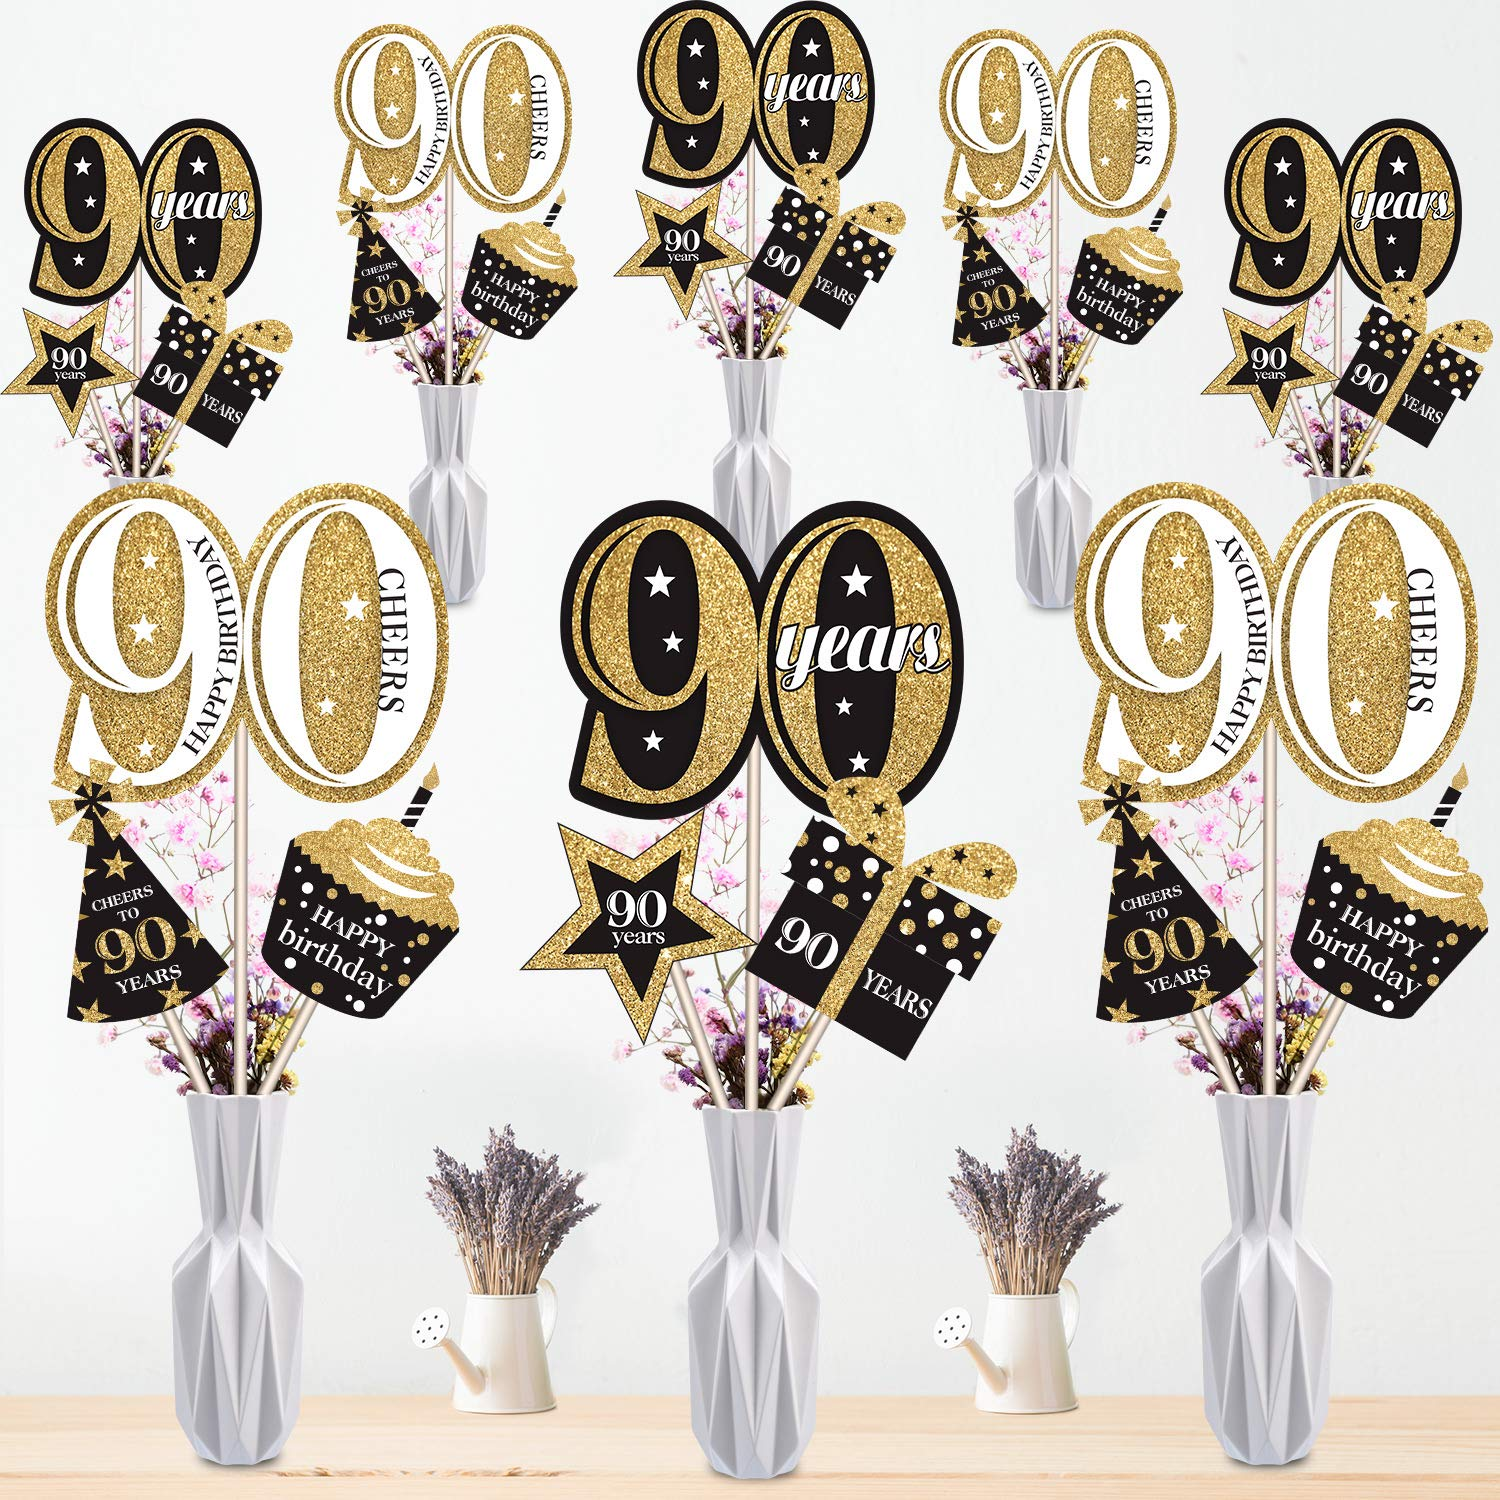 Blulu 70th Birthday Party Decoration Set Golden Birthday Party Centerpiece Sticks Glitter Table Toppers Party Supplies 70th Birthday 24 Pack